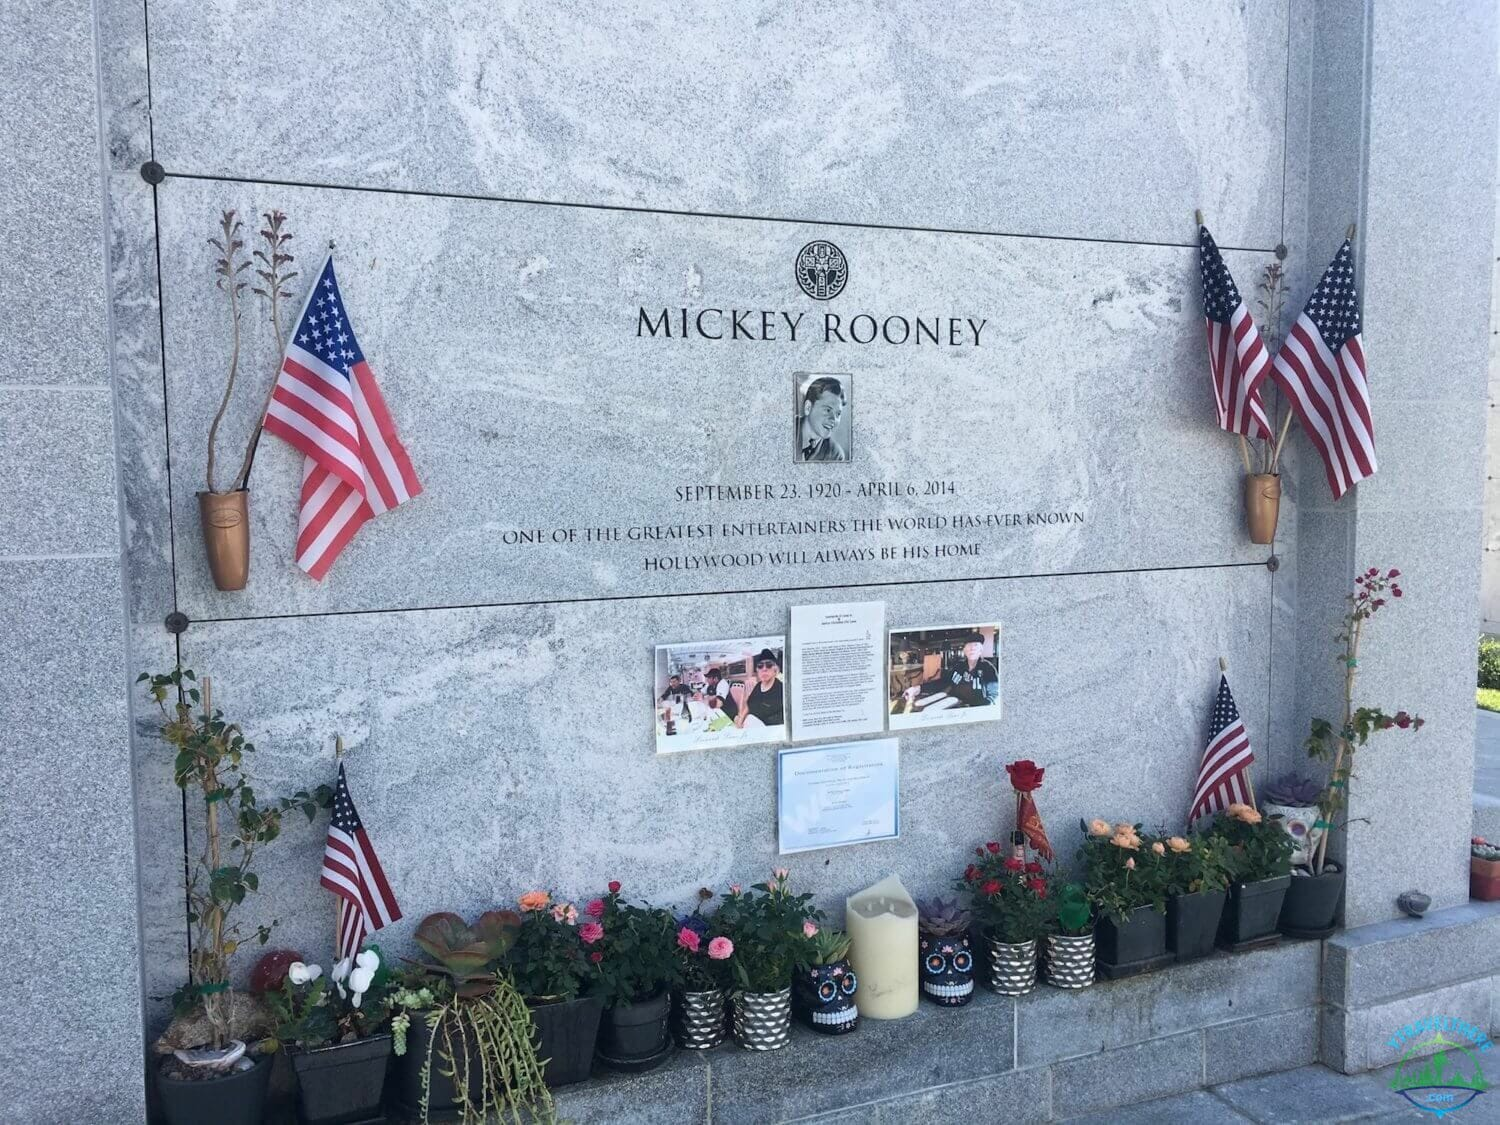 mickey Rooney final resting place, hollywood forever cemetery